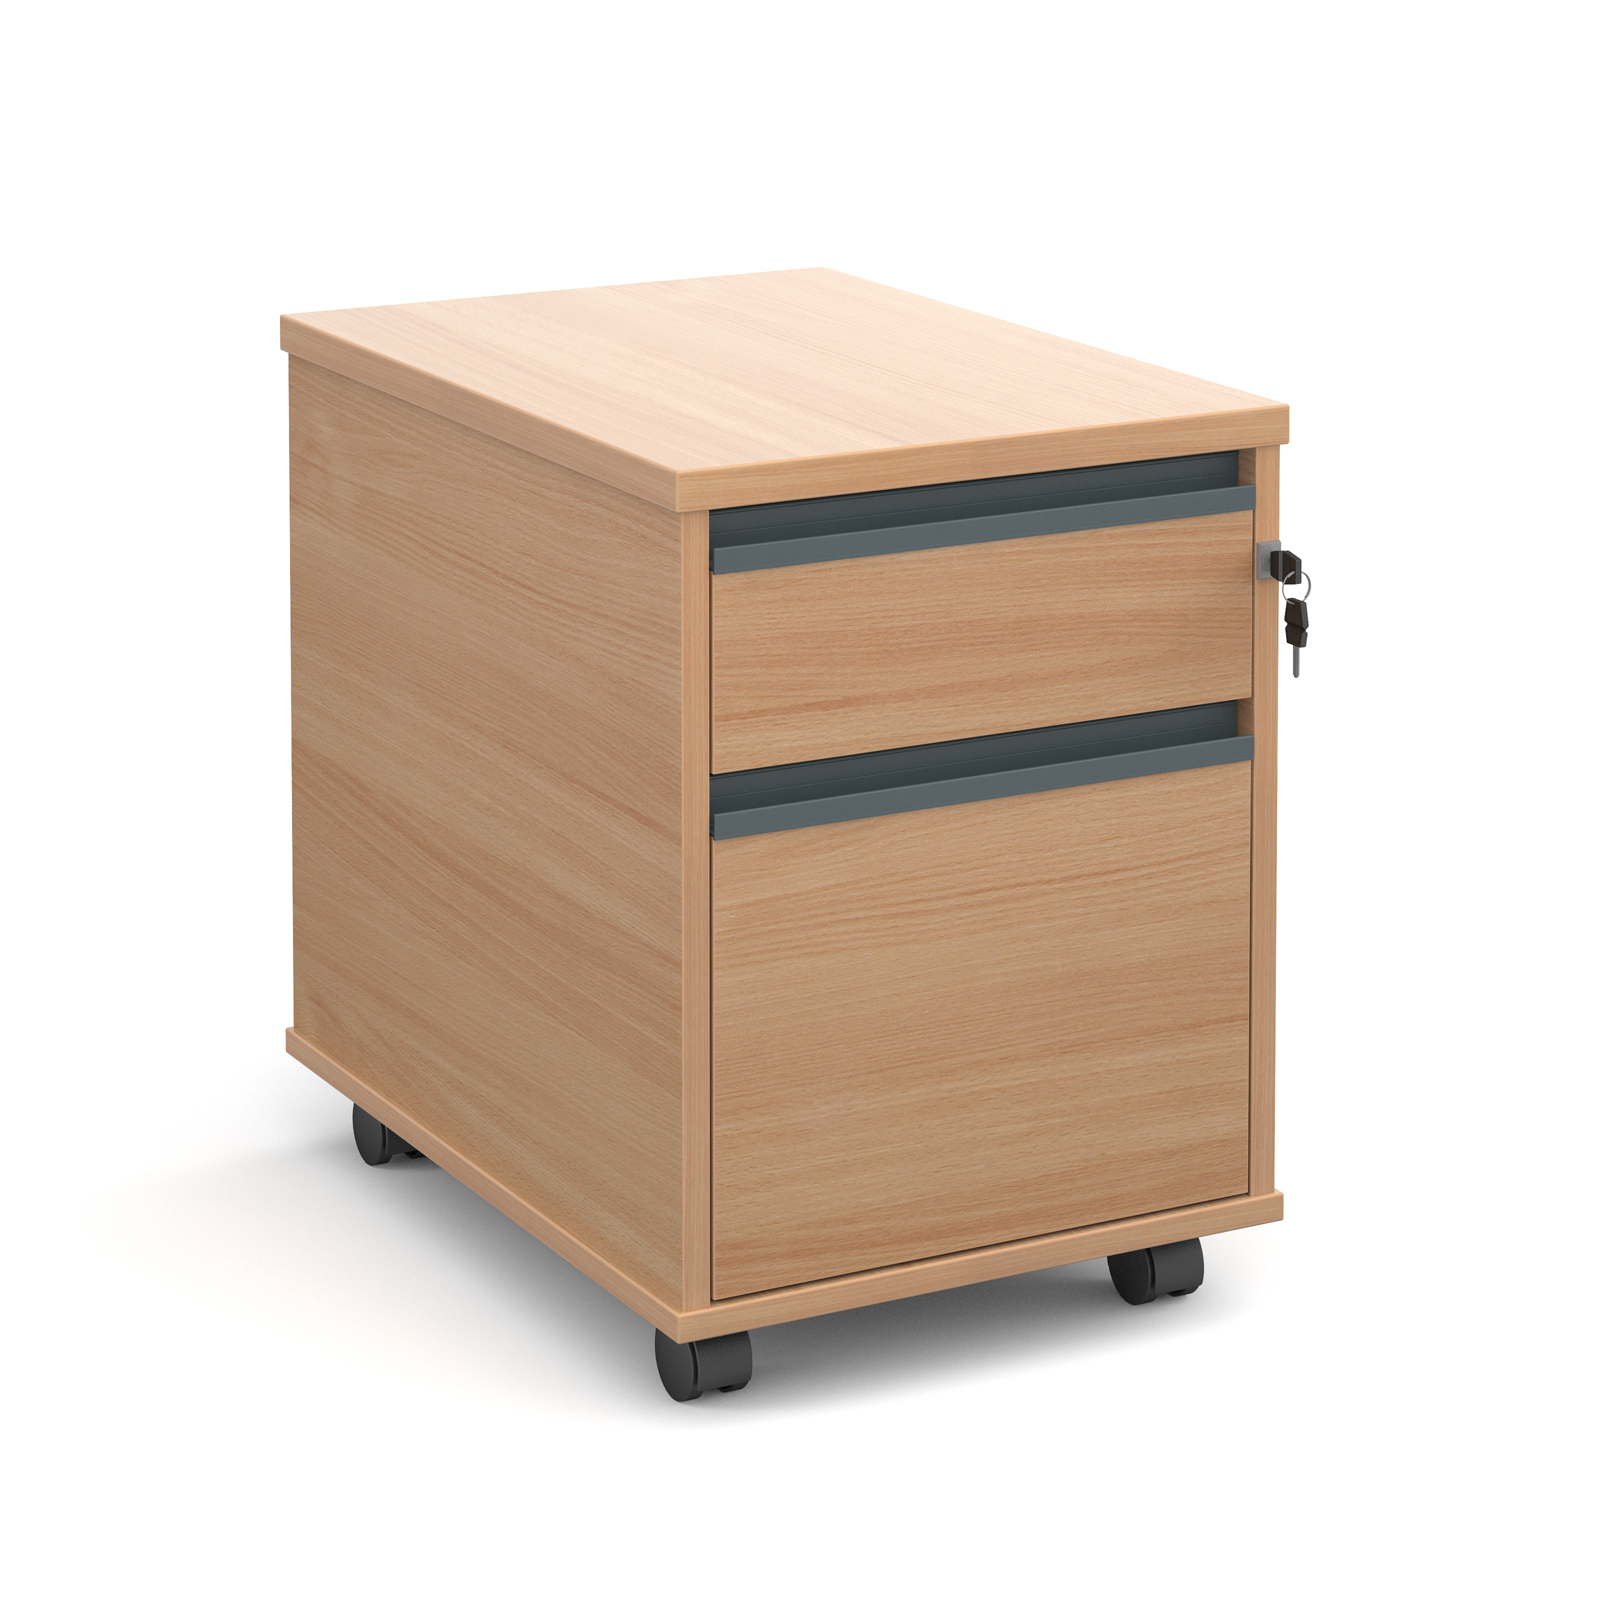 Mobile 2 drawer pedestal with graphite finger pull handles 600mm deep - beech